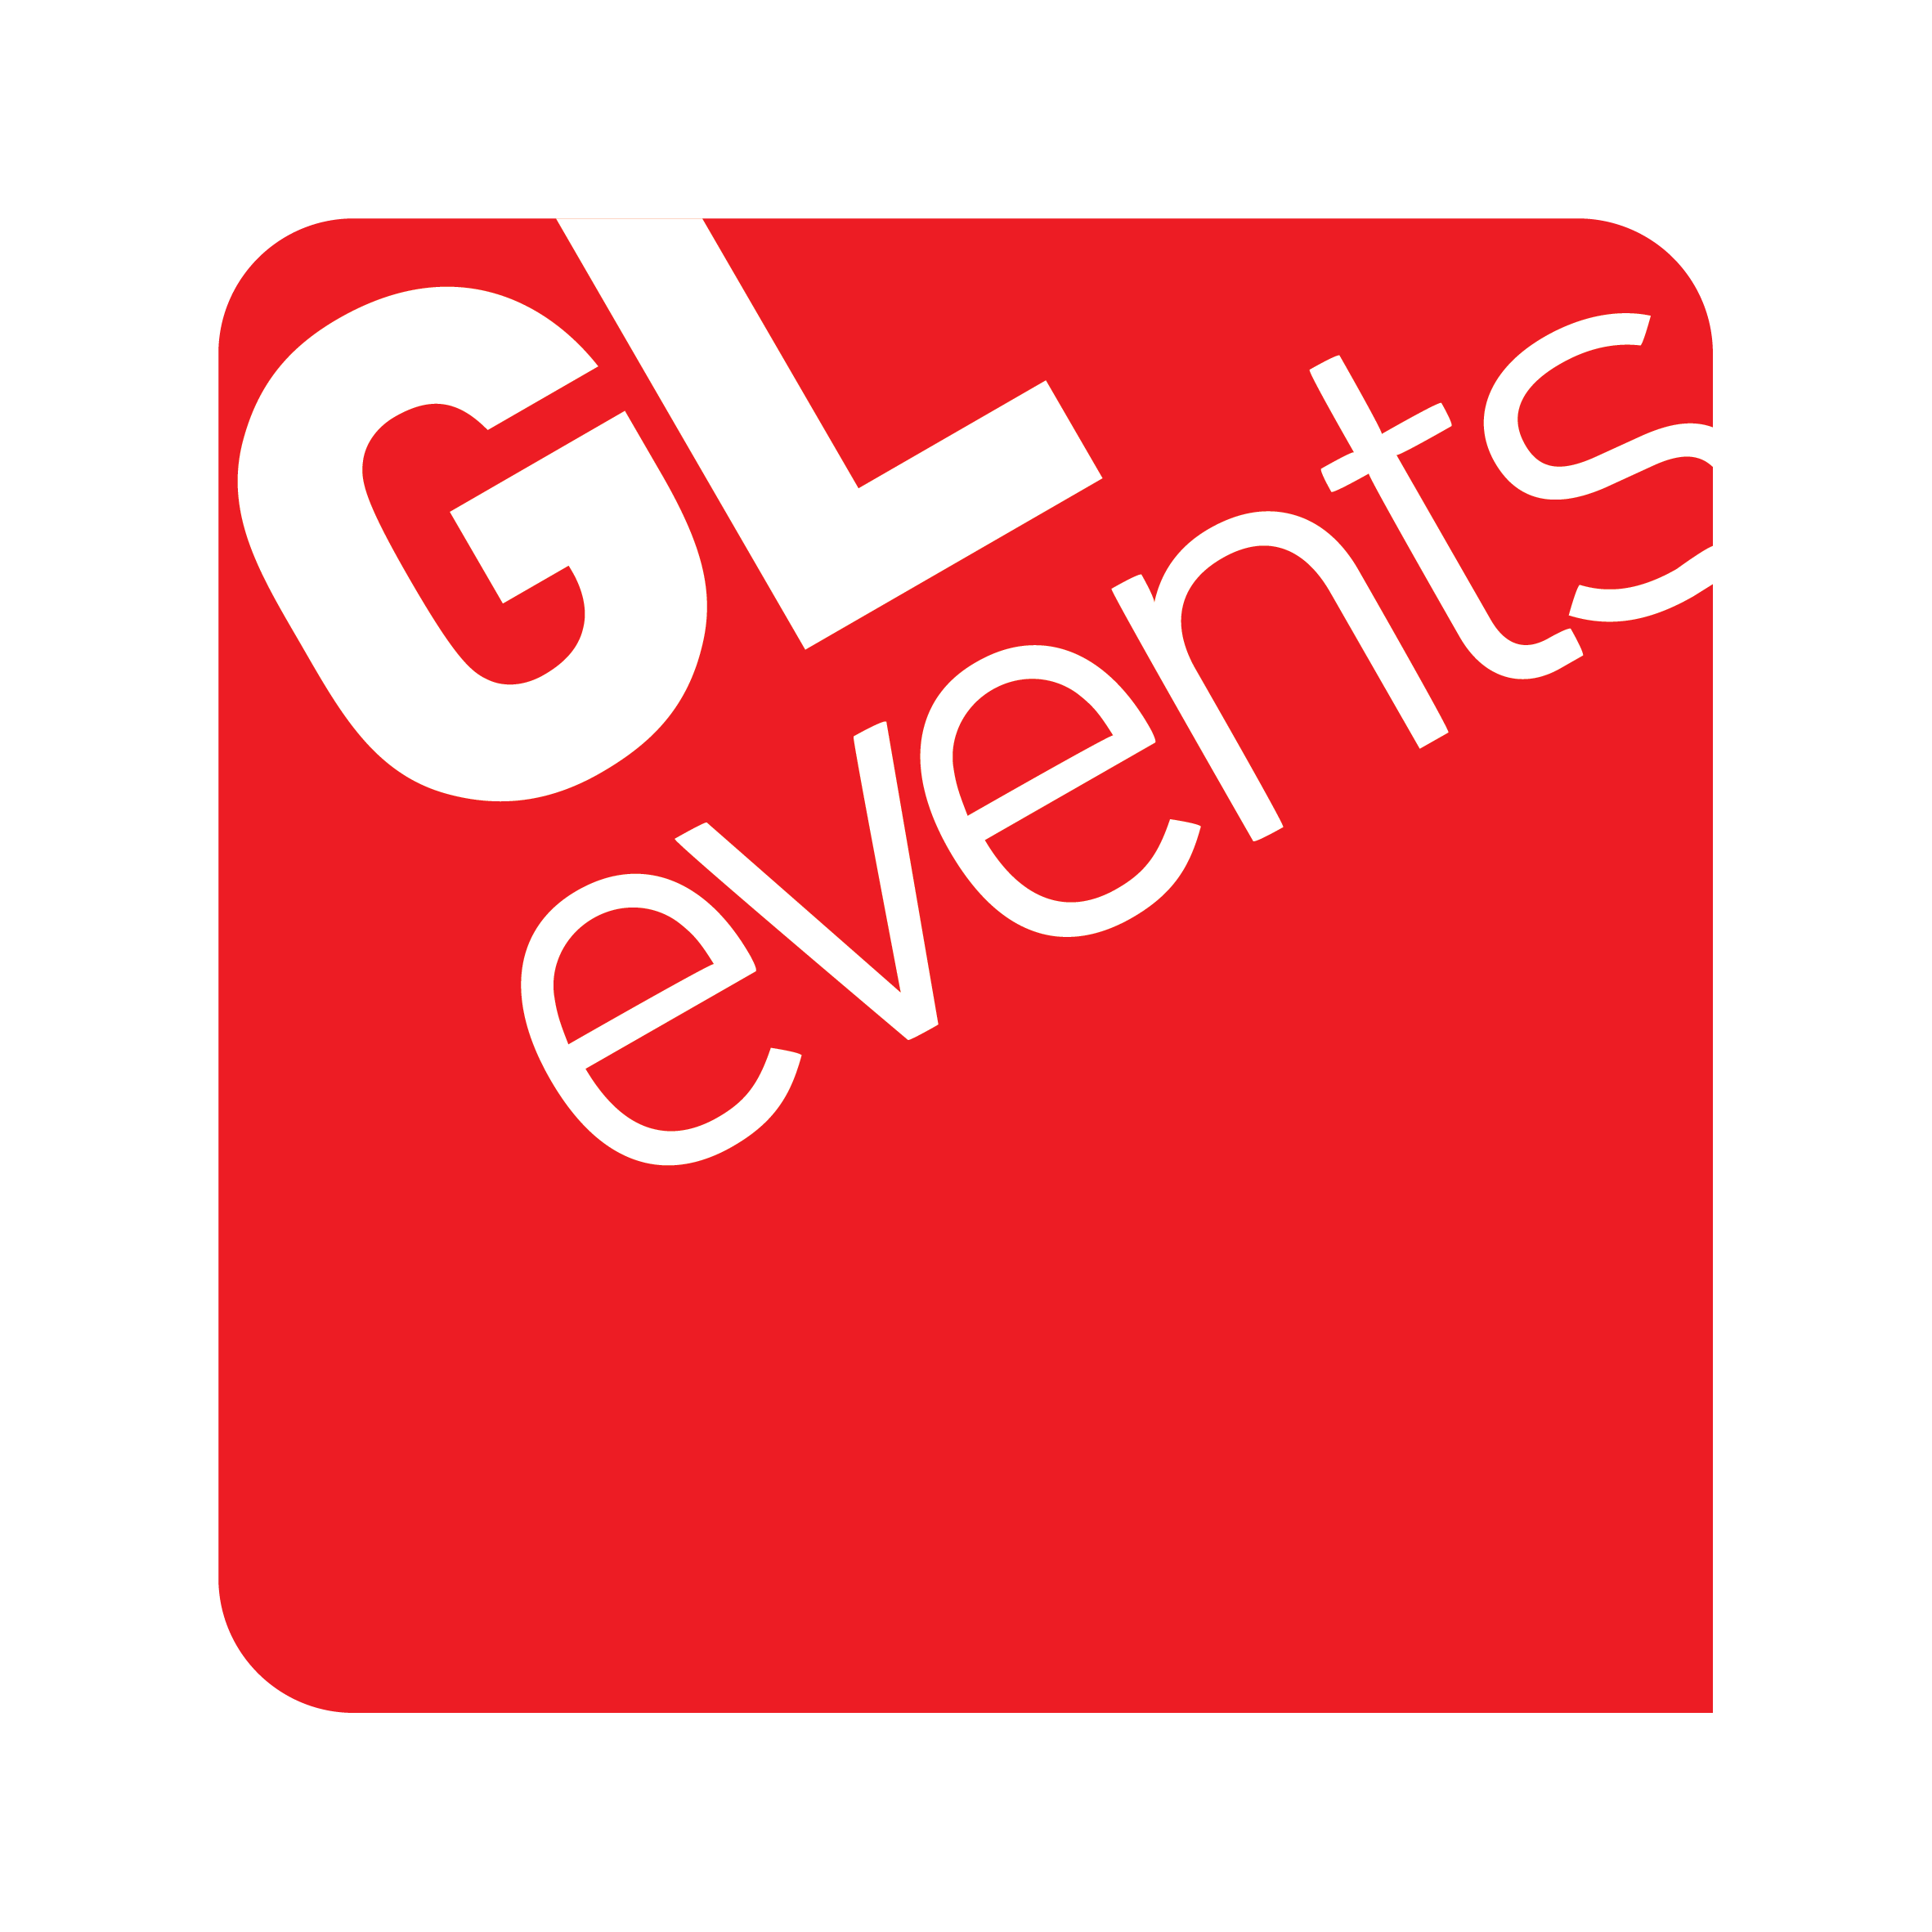 GL events Exhibitions Turkey